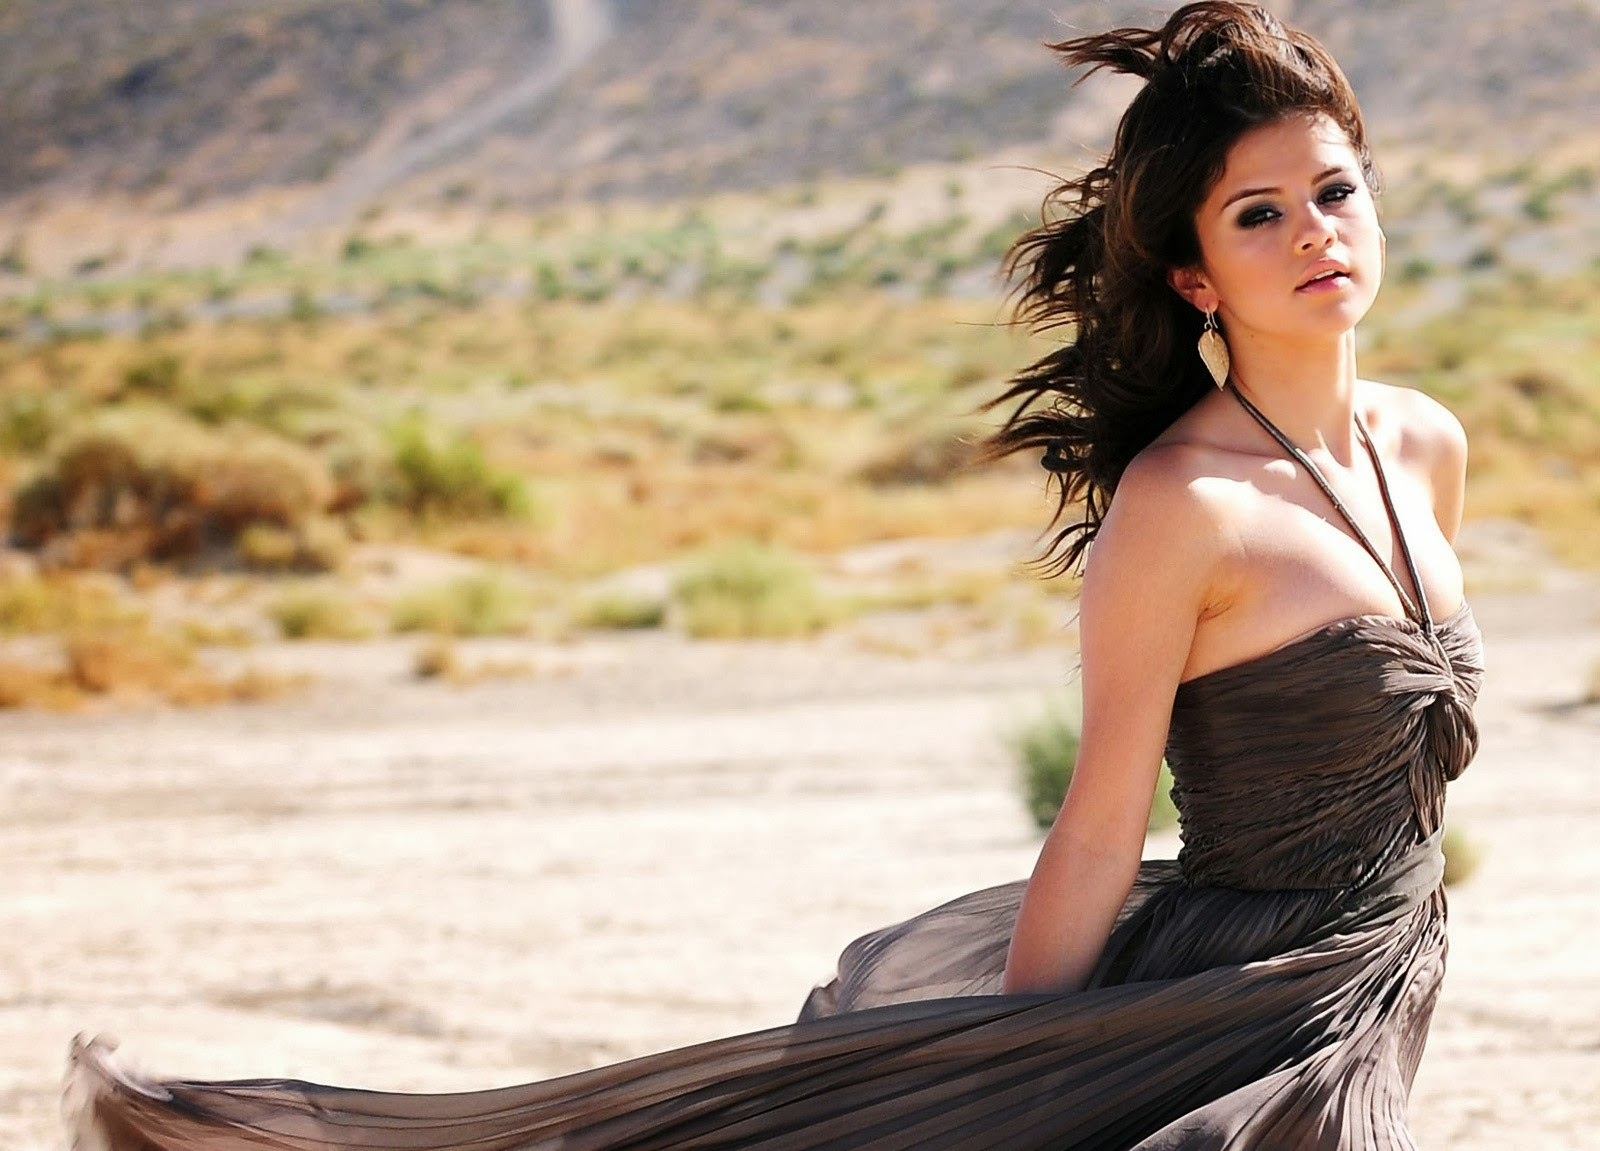 Selena Gomez HD Wallpapers Free Download